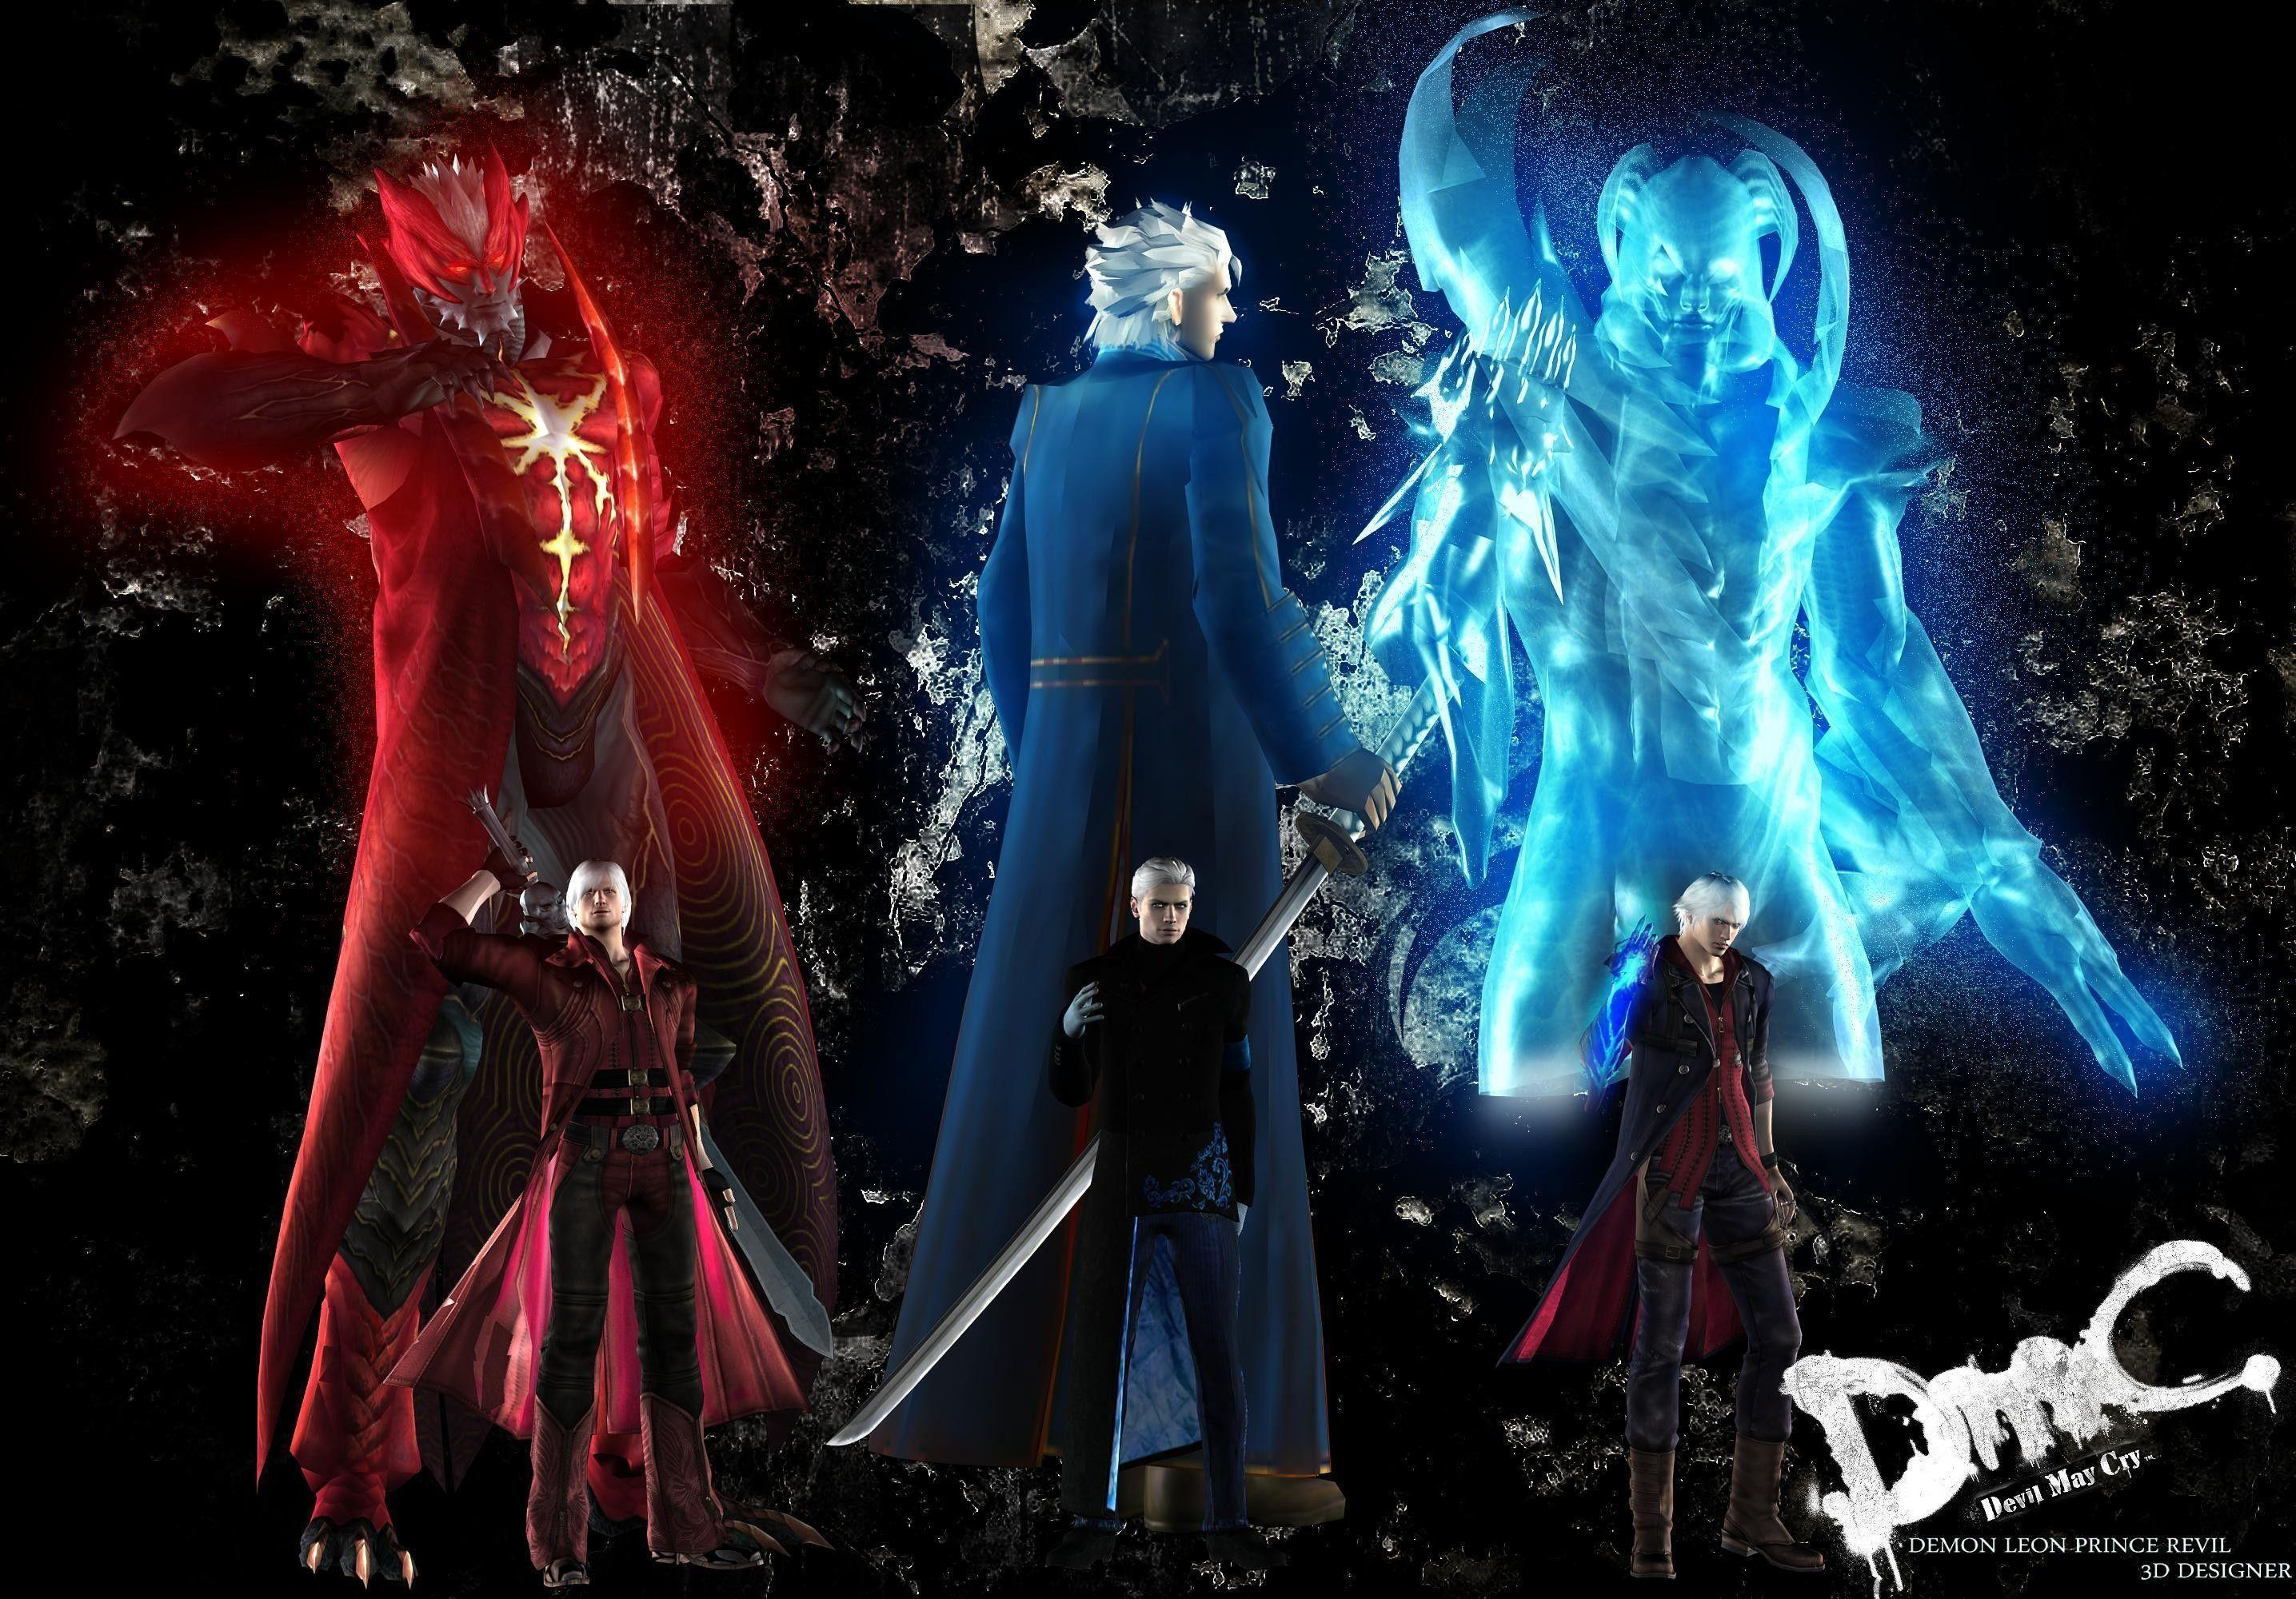 Dante Devil May Cry 5 Wallpapers - Wallpaper Cave